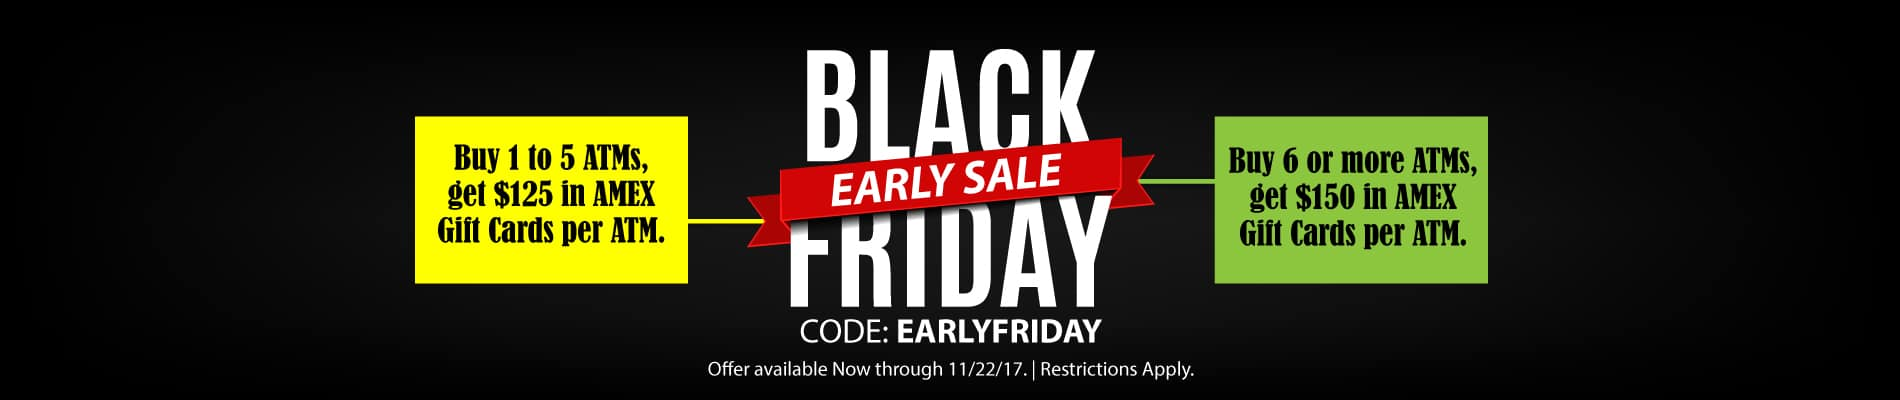 Black Friday - Early Sale